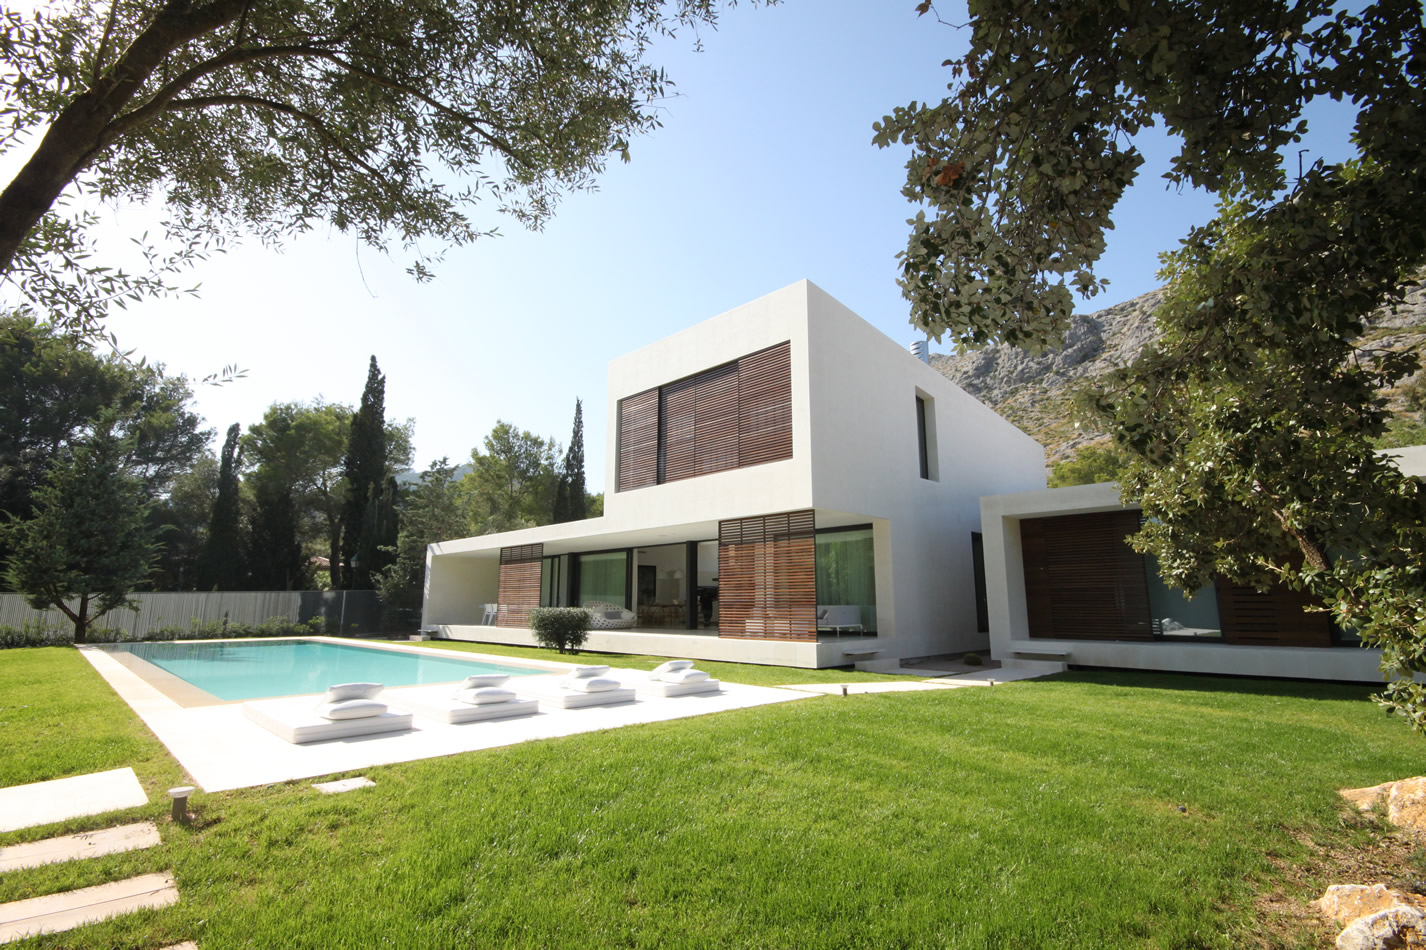 Mallorca villas trends tips and best advice when buying for Ville moderne immagini